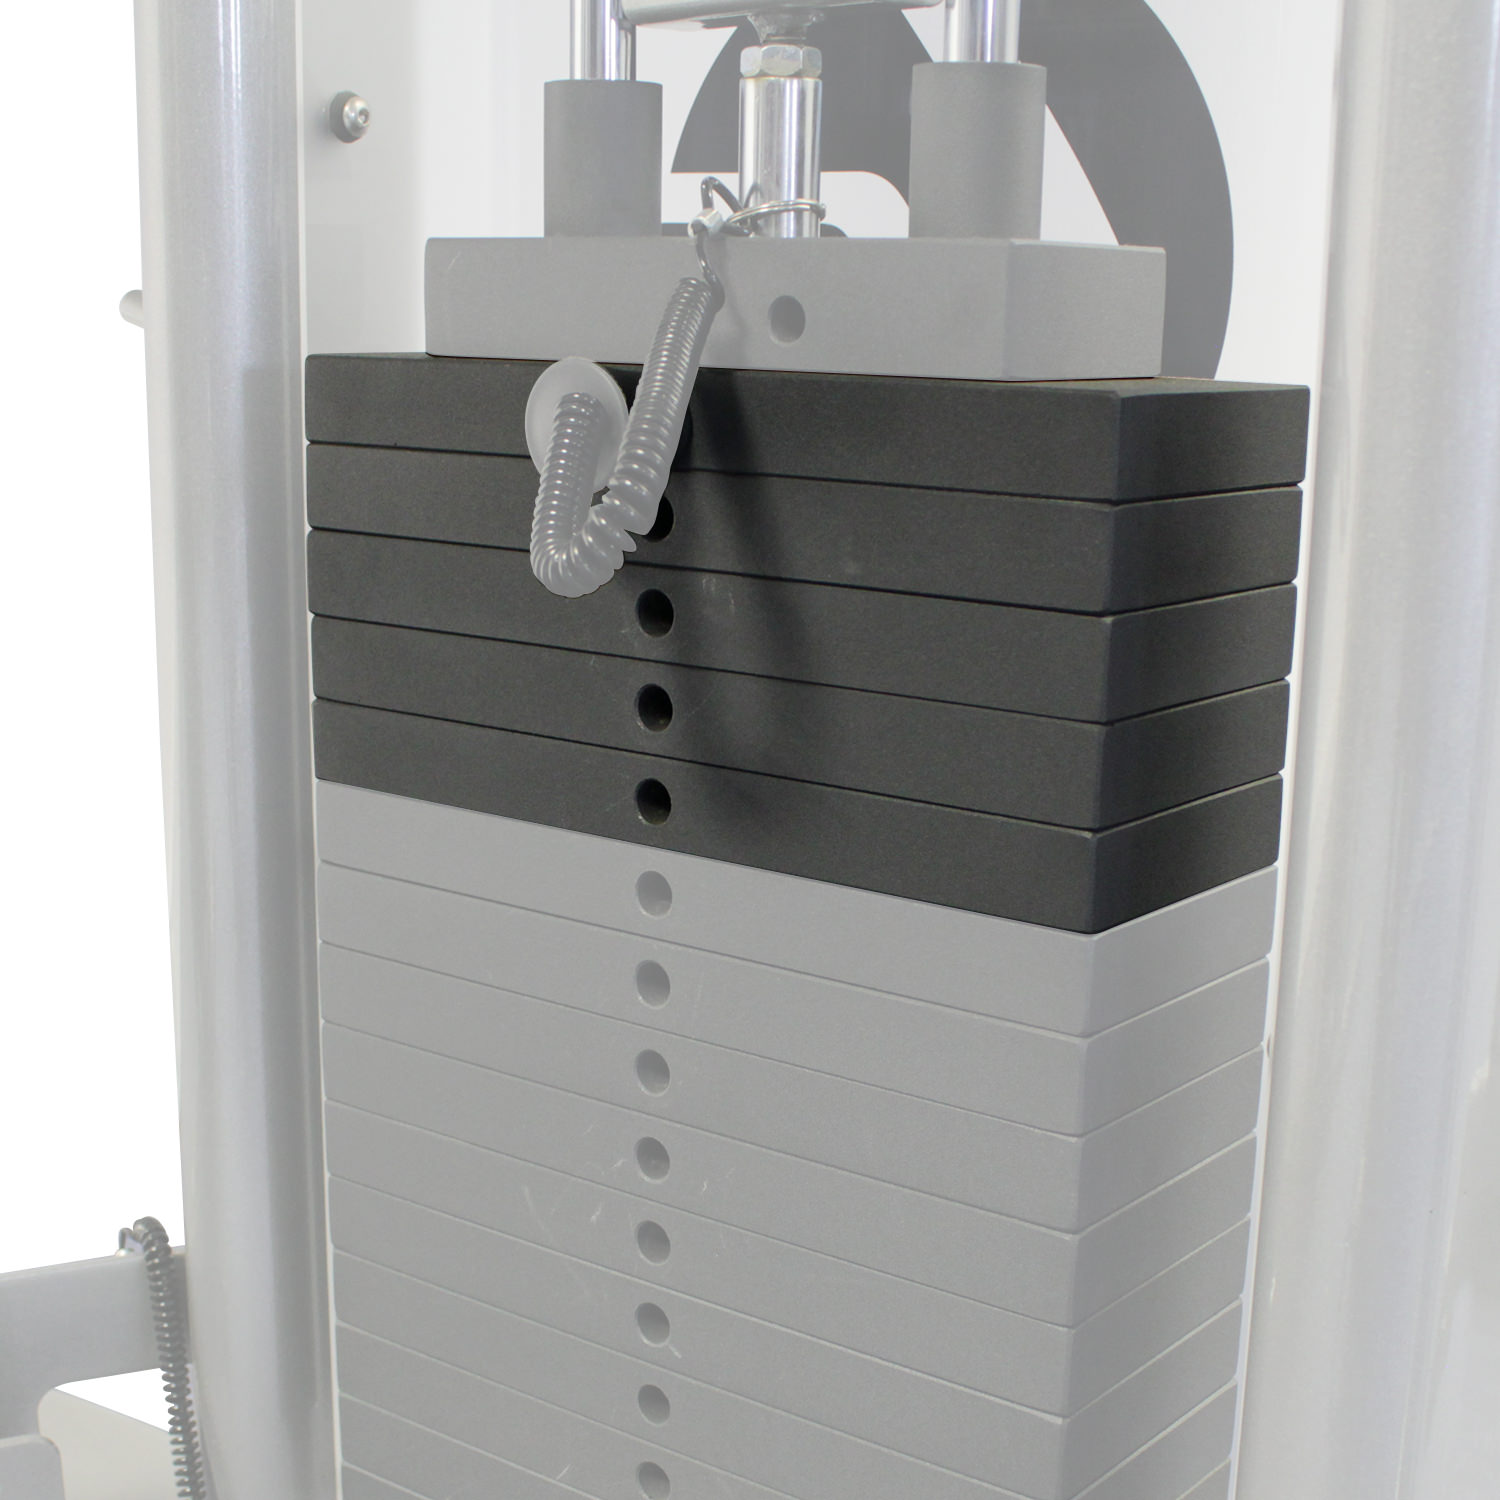 Image of Life Fitness 50lb Weight Stack Upgrade (Fits G2 or G4)